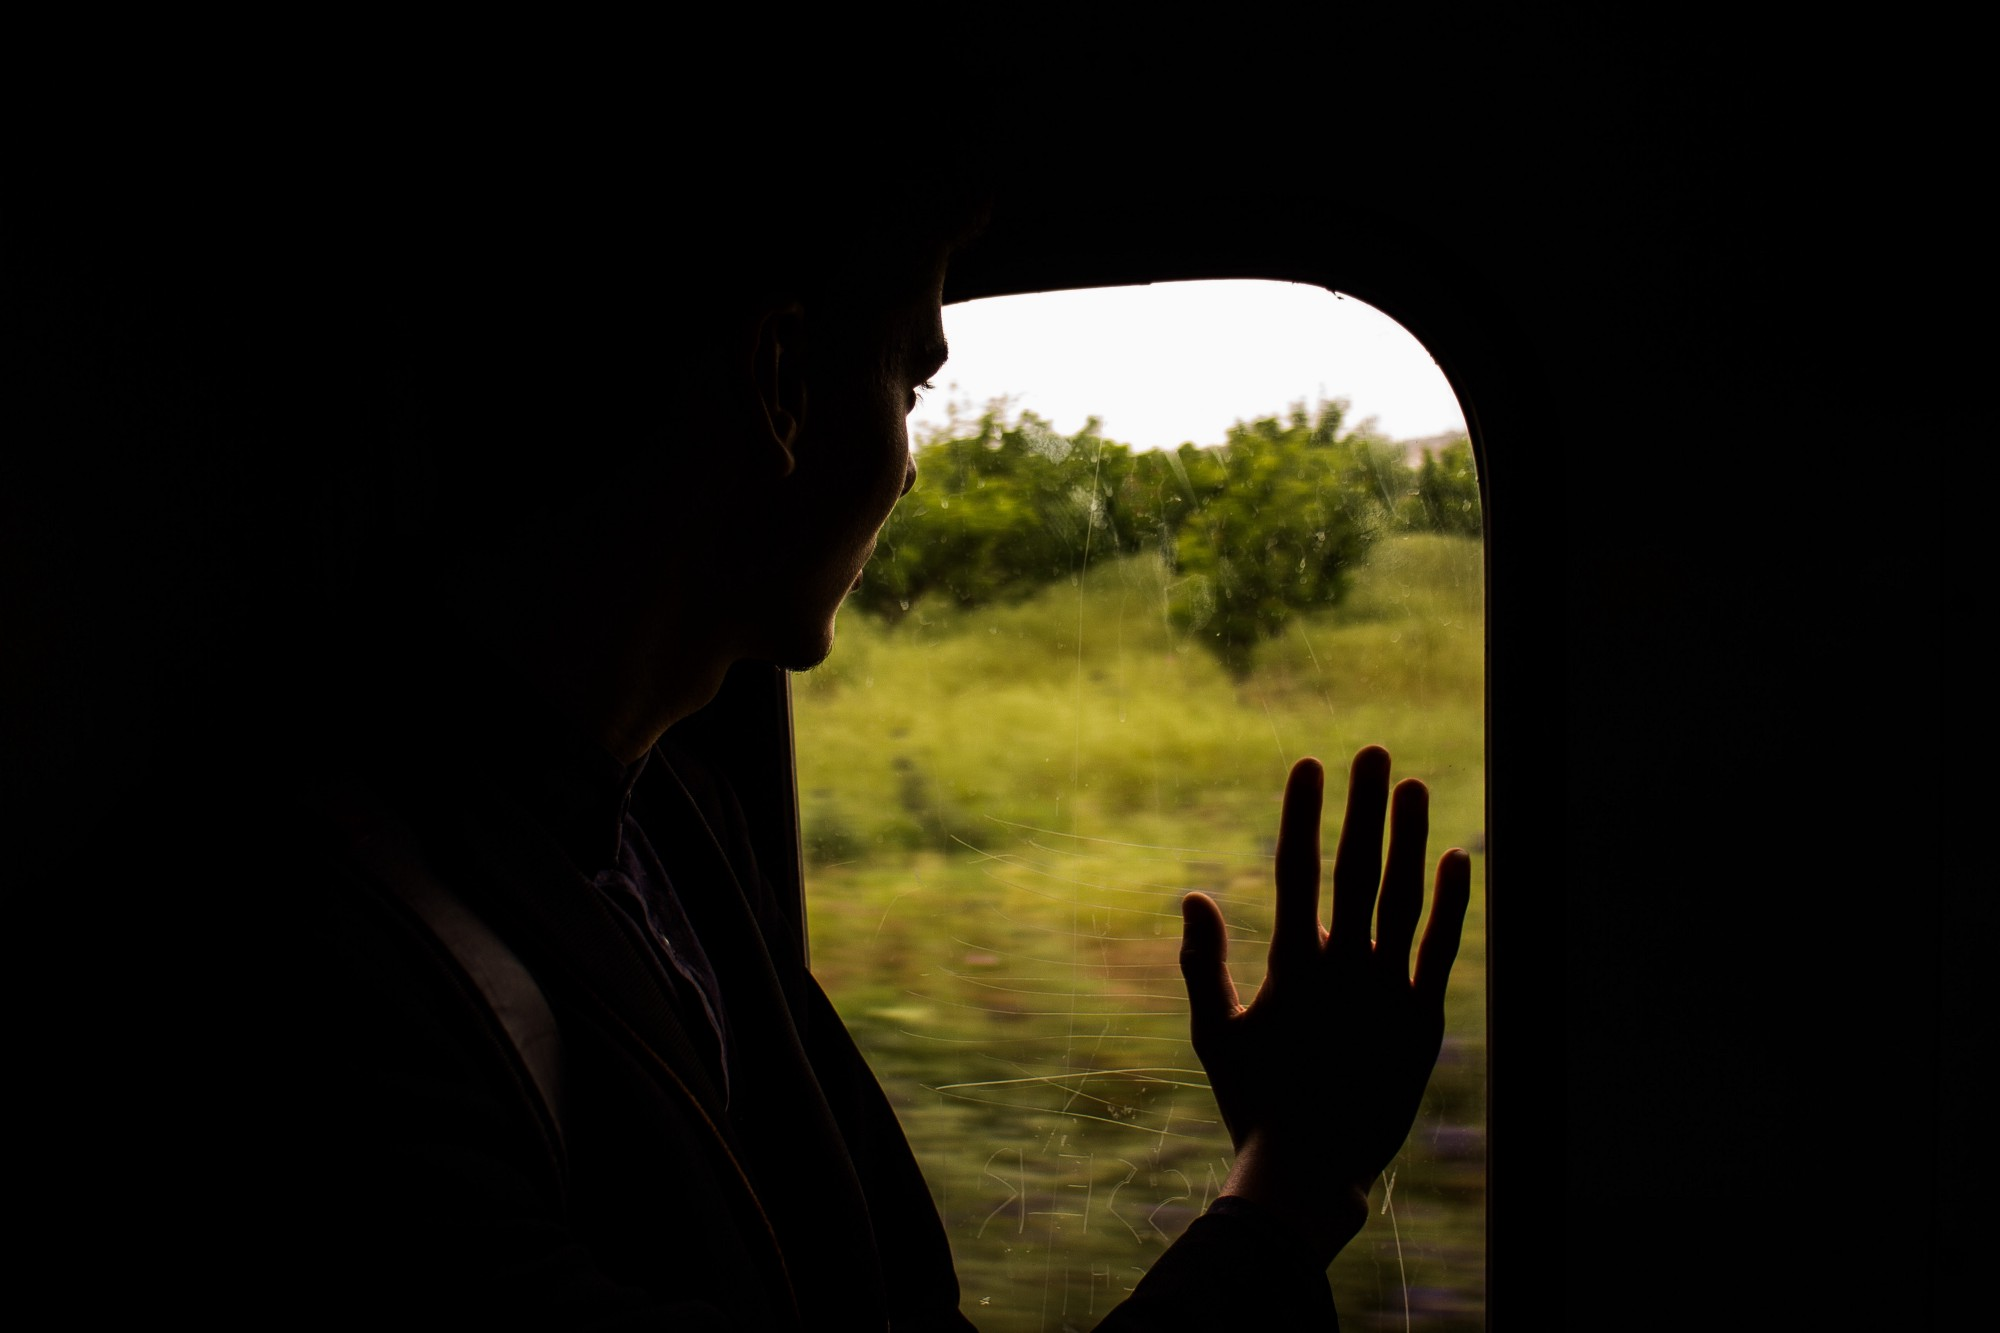 A passenger presses a hand to a glass window as the train rolls past a field with trees